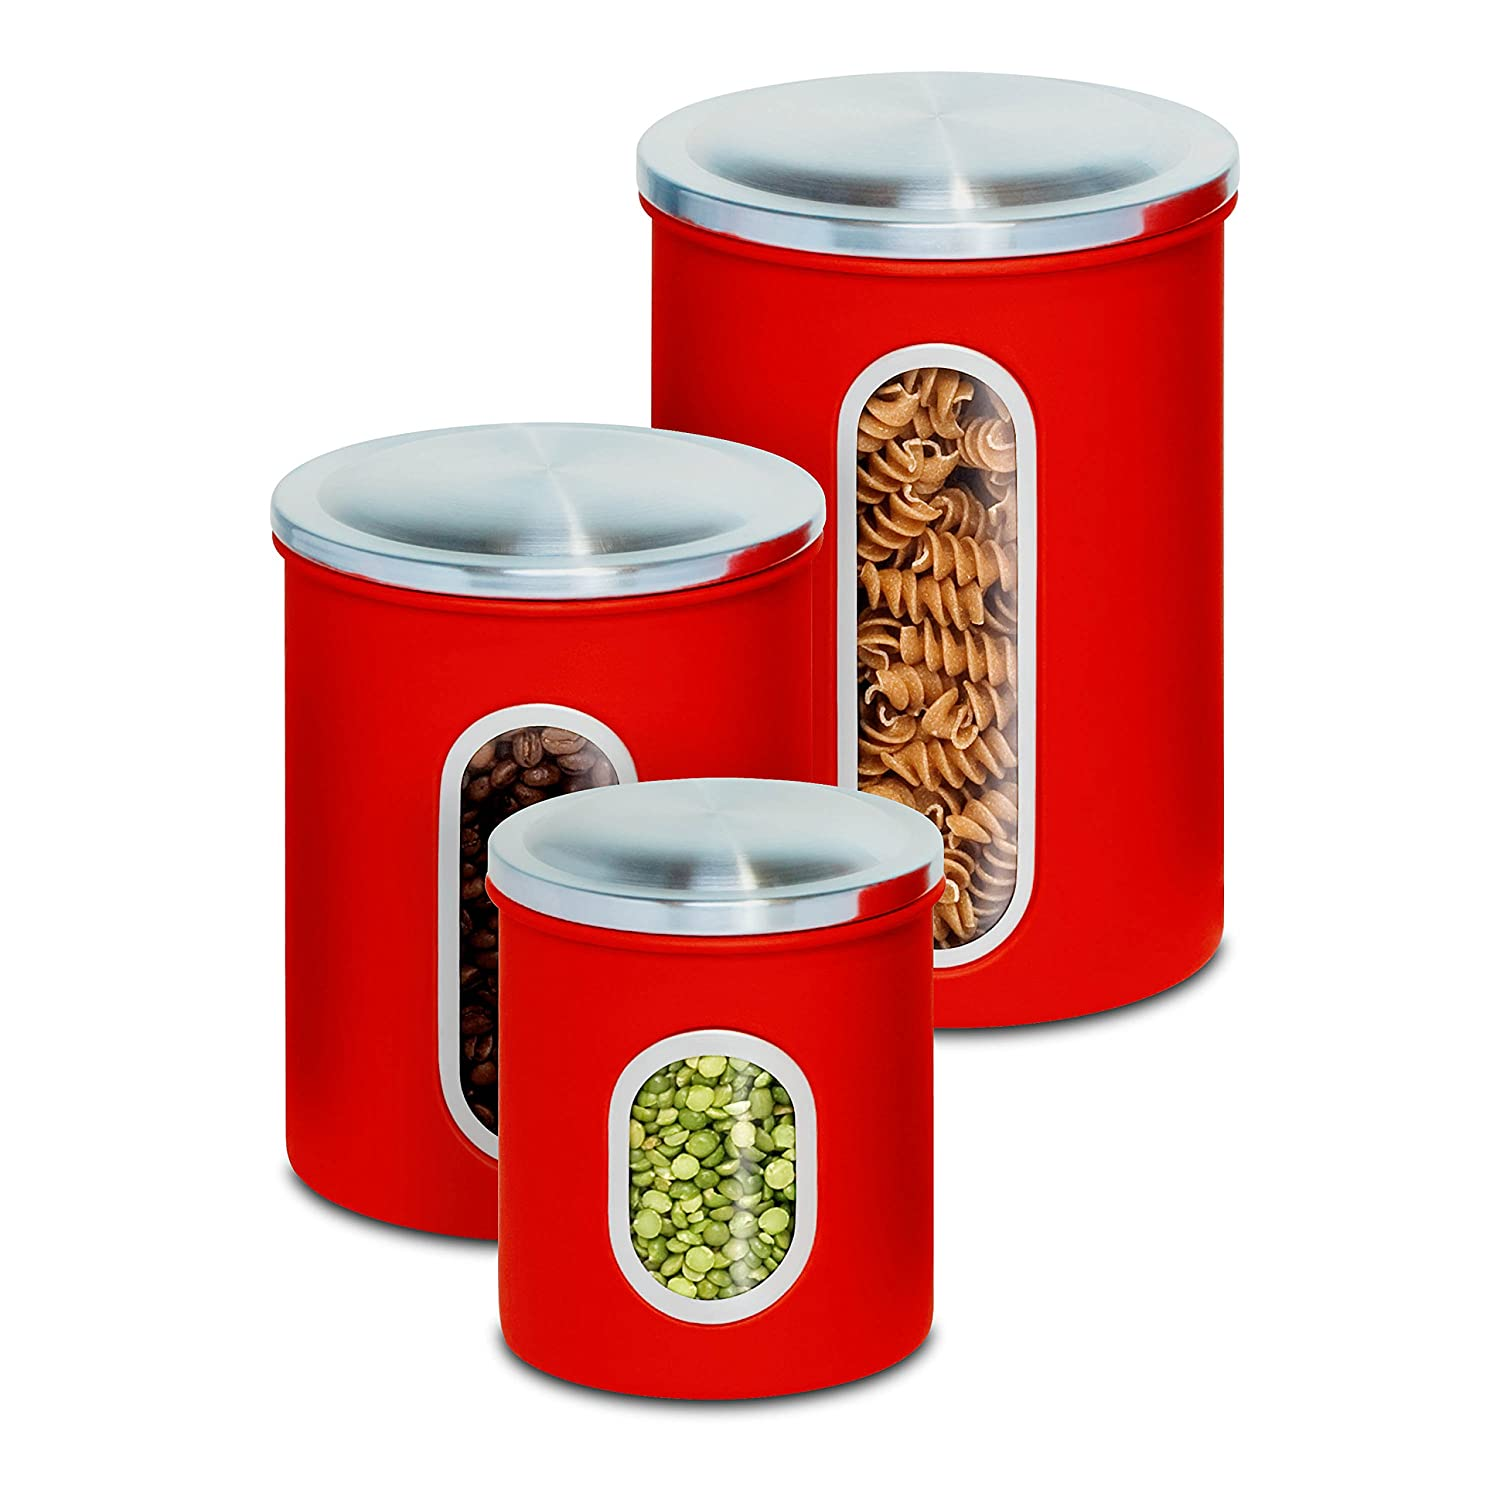 Honey-Can-Do KCH-03011 3-Piece Metal Nested Canister Set, Copper KCH-01026